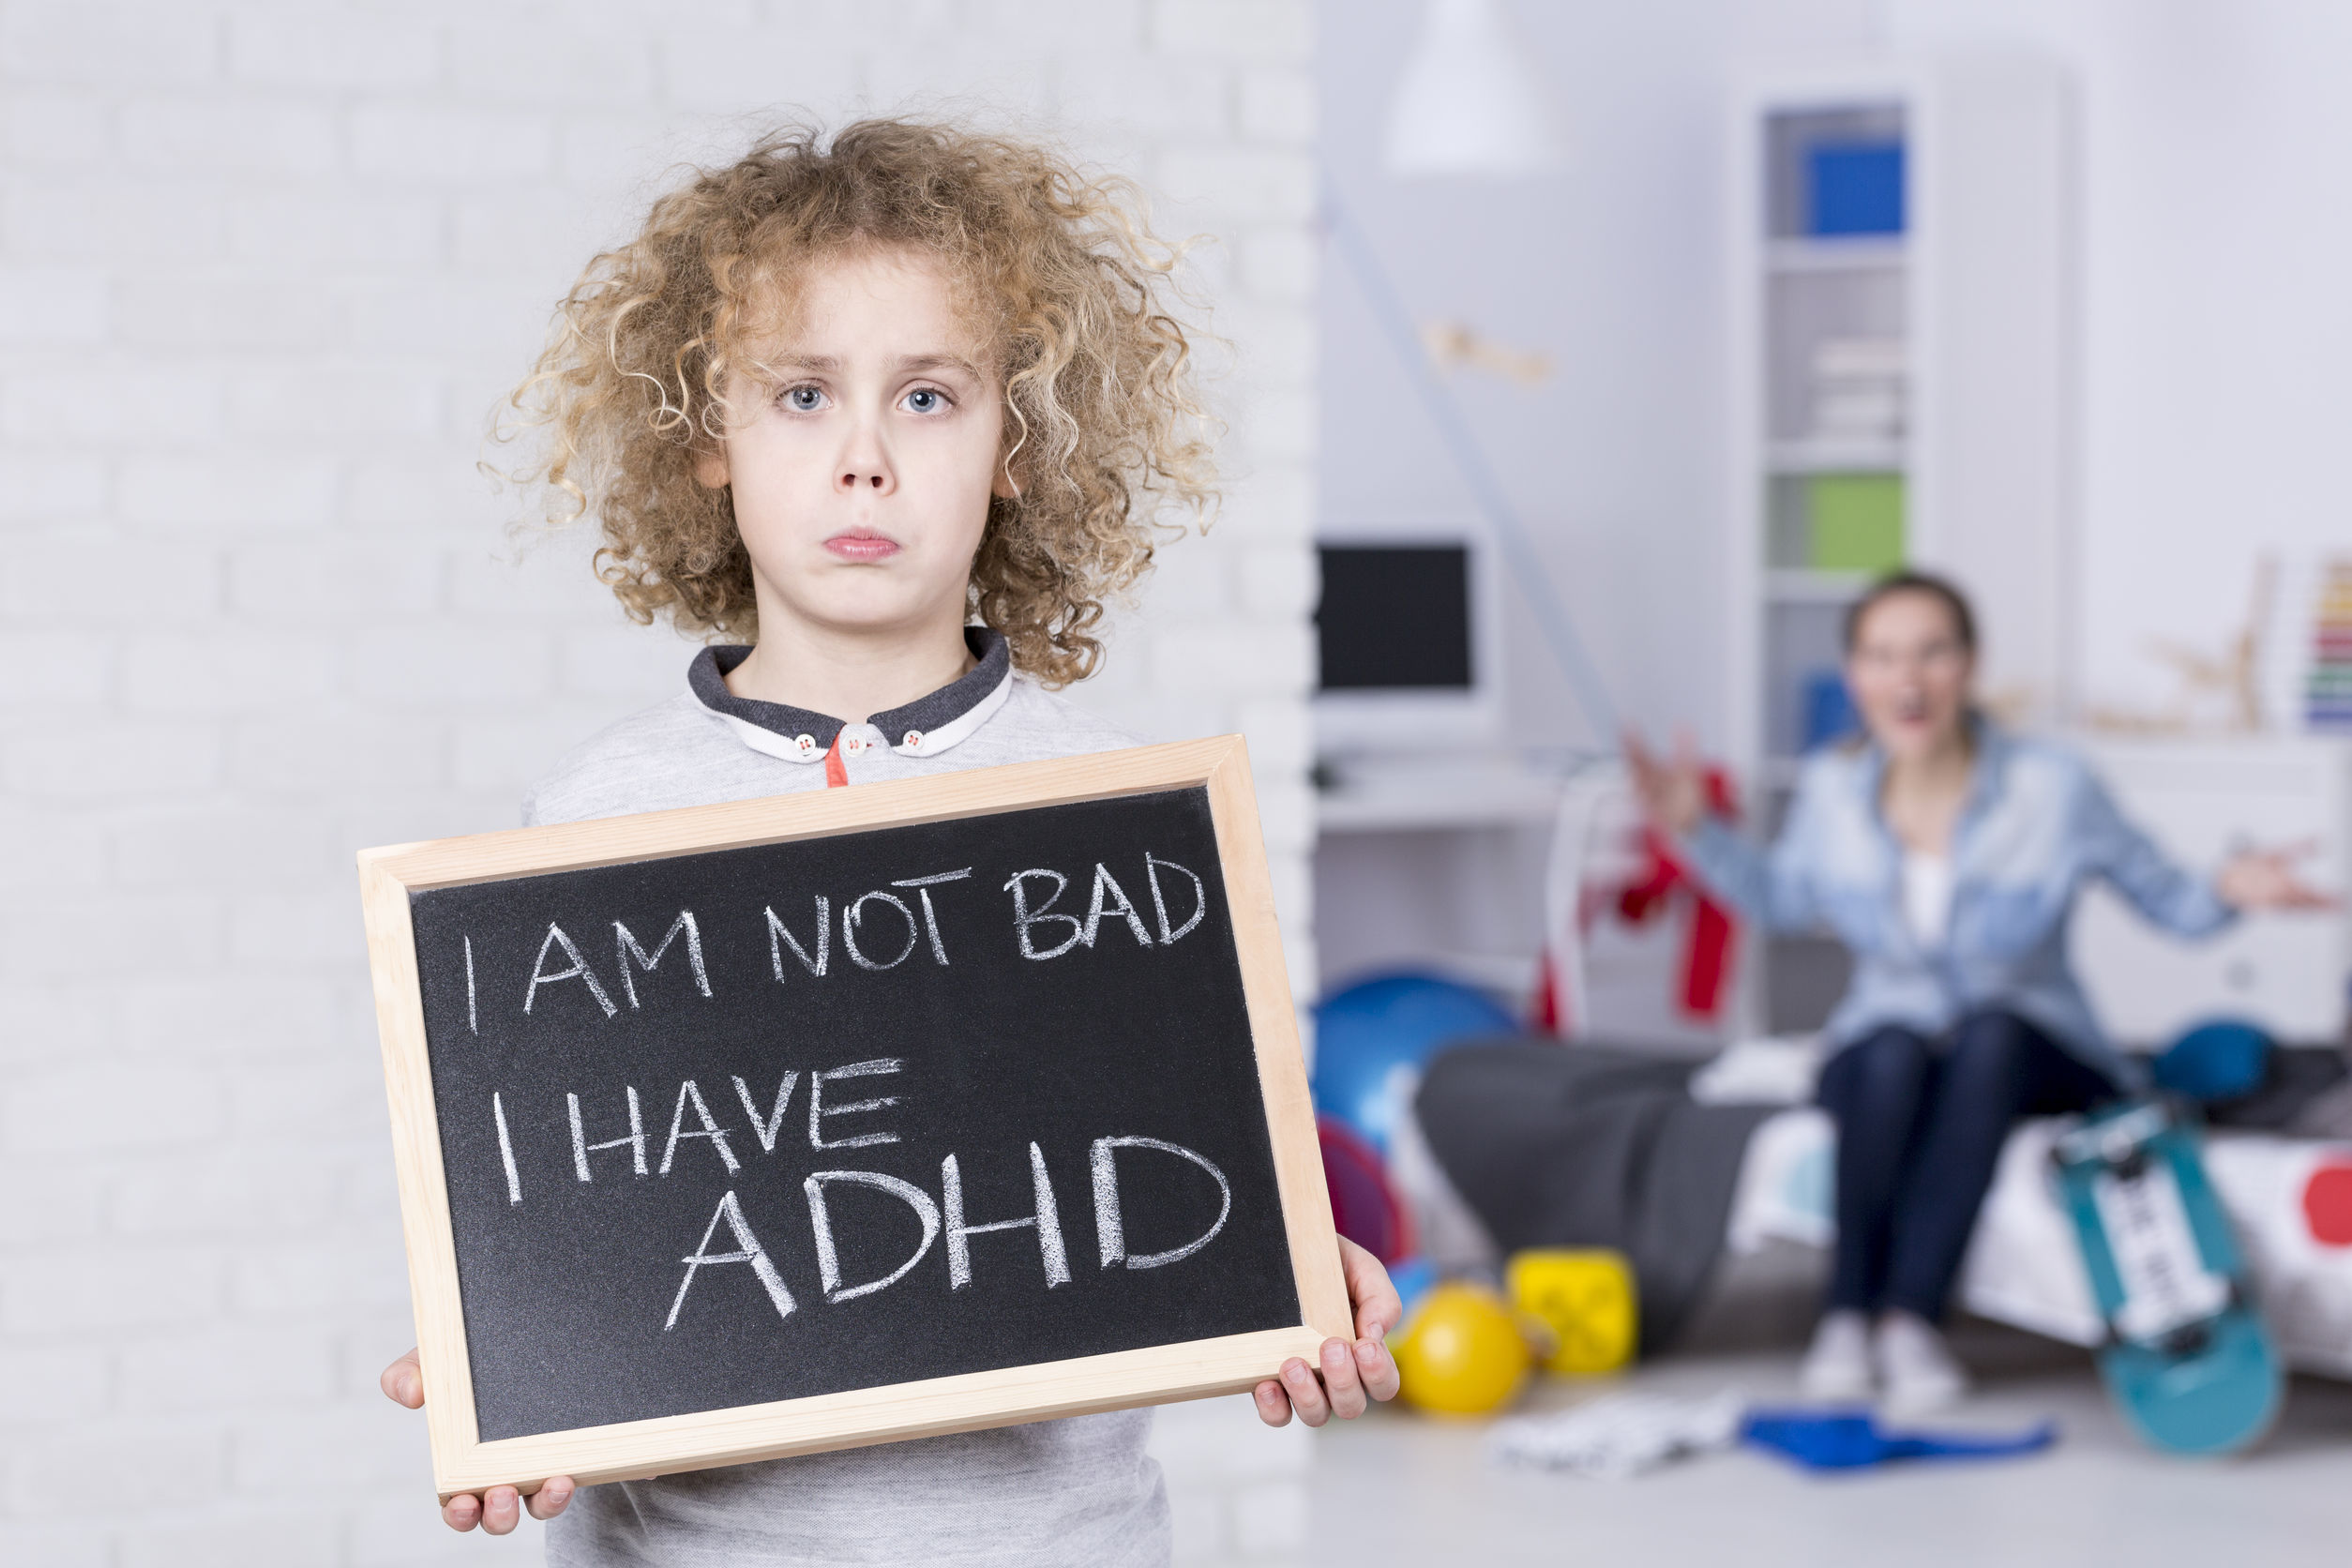 DSM 5: ADHD: Attention Deficit Hyperactivity Disorder